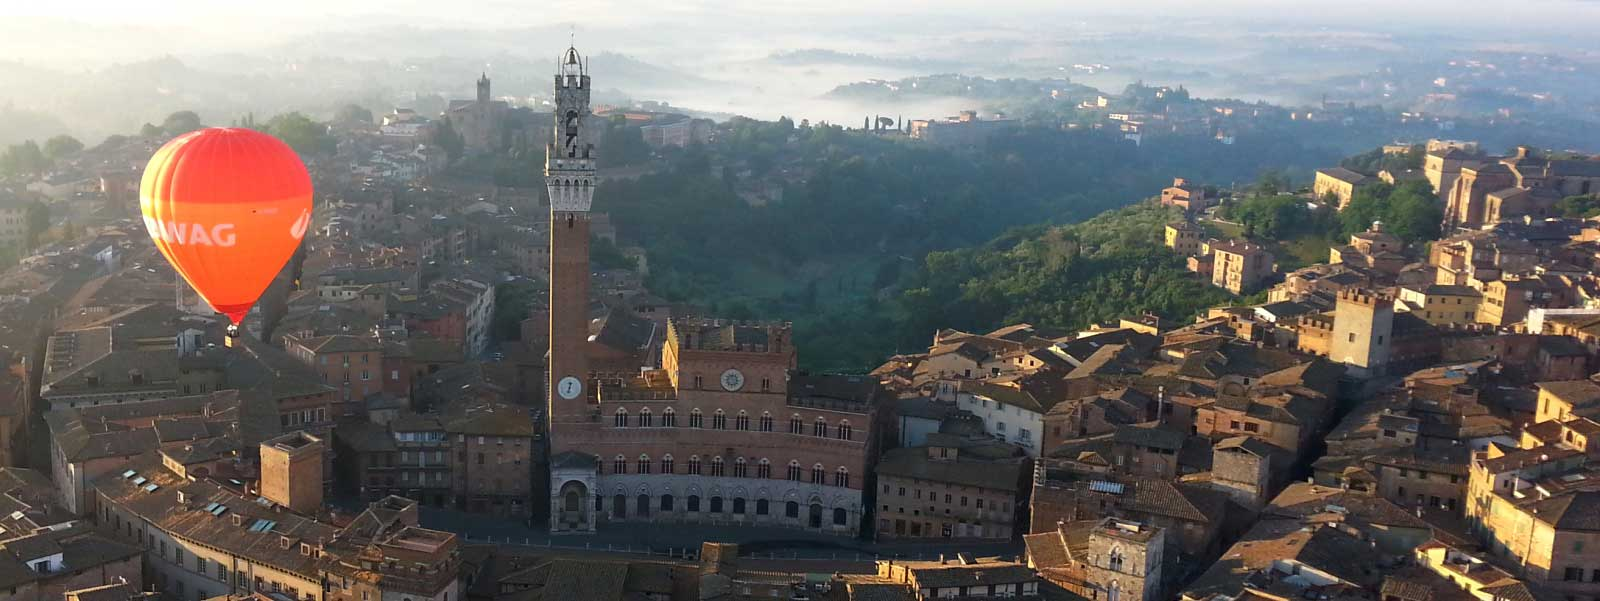 balloon-ride-over-siena